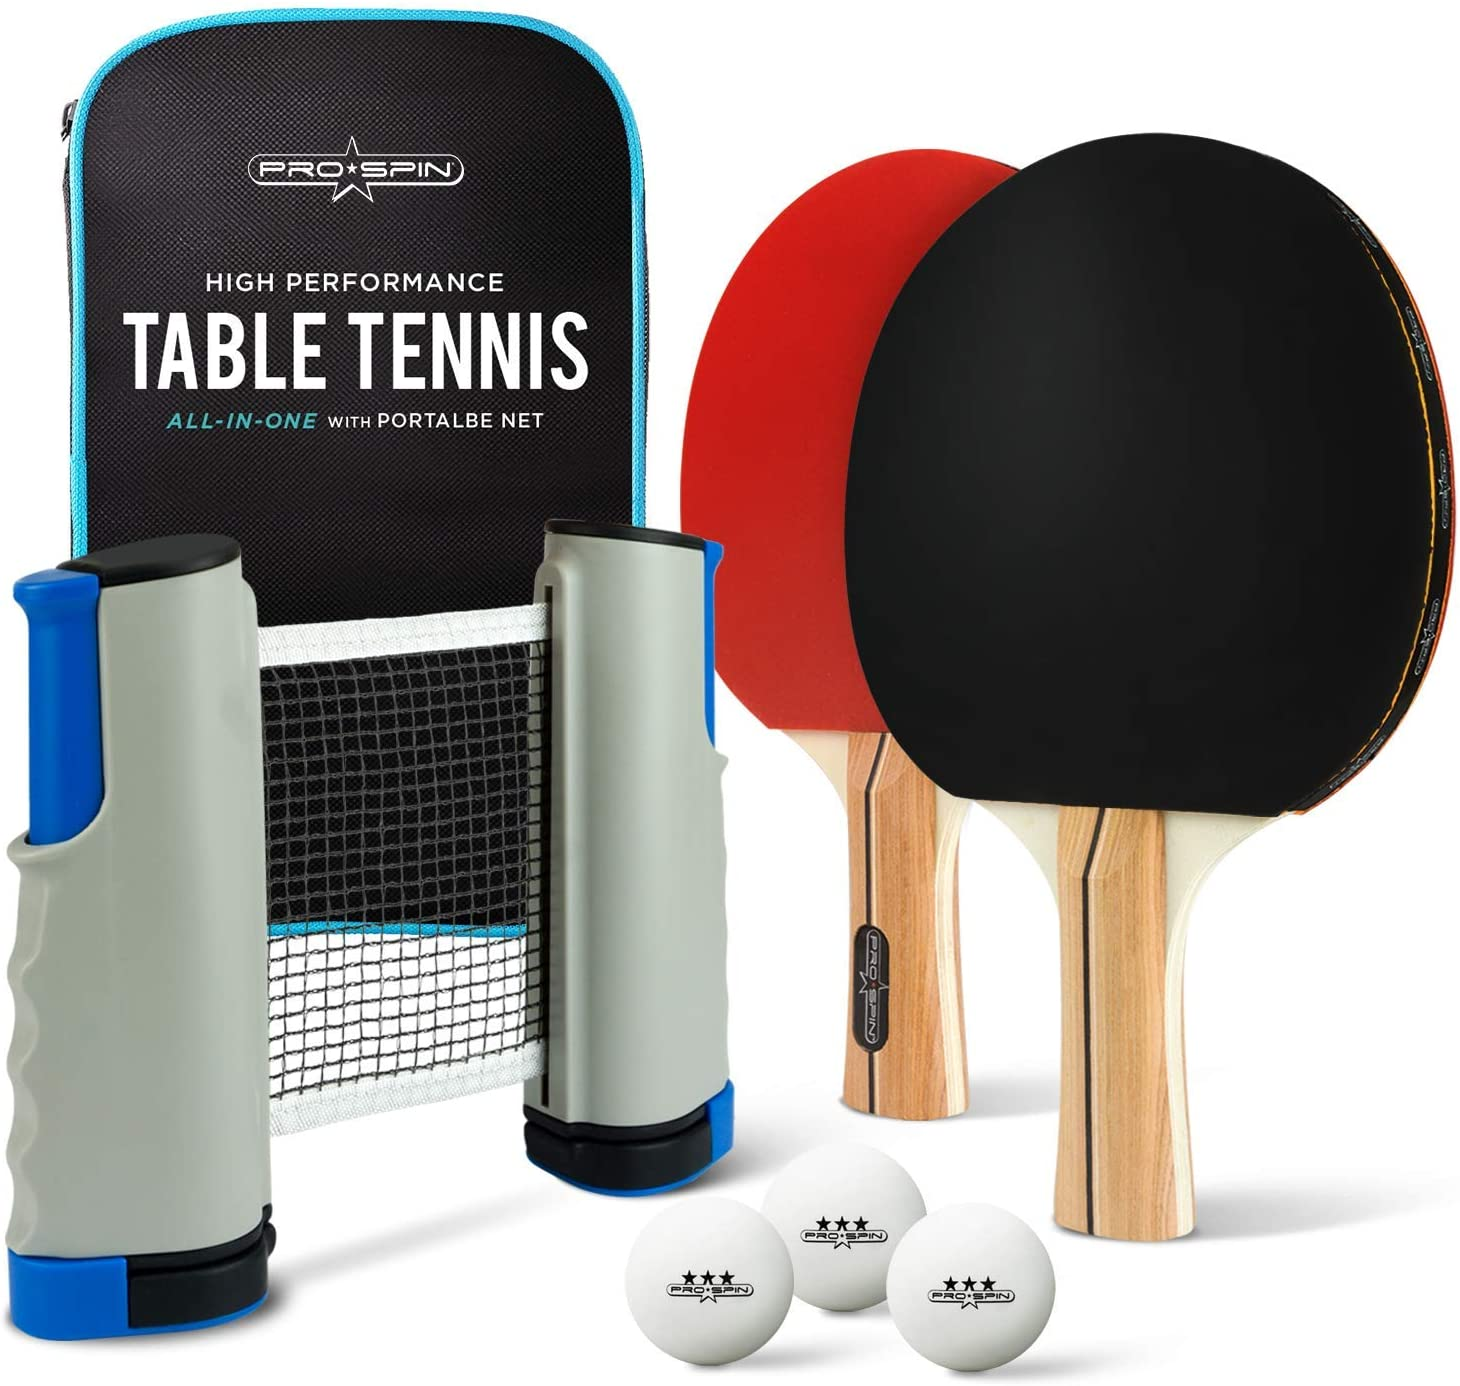 PRO SPIN Portable Ping Pong Set - Retractable Ping Pong Net for Any Table, 2 Ping-Pong Paddles/Rackets, 3 White 3-Star Balls, Premium Storage Case | Quality Table Tennis Set with Retractable Net : Sports & Outdoors